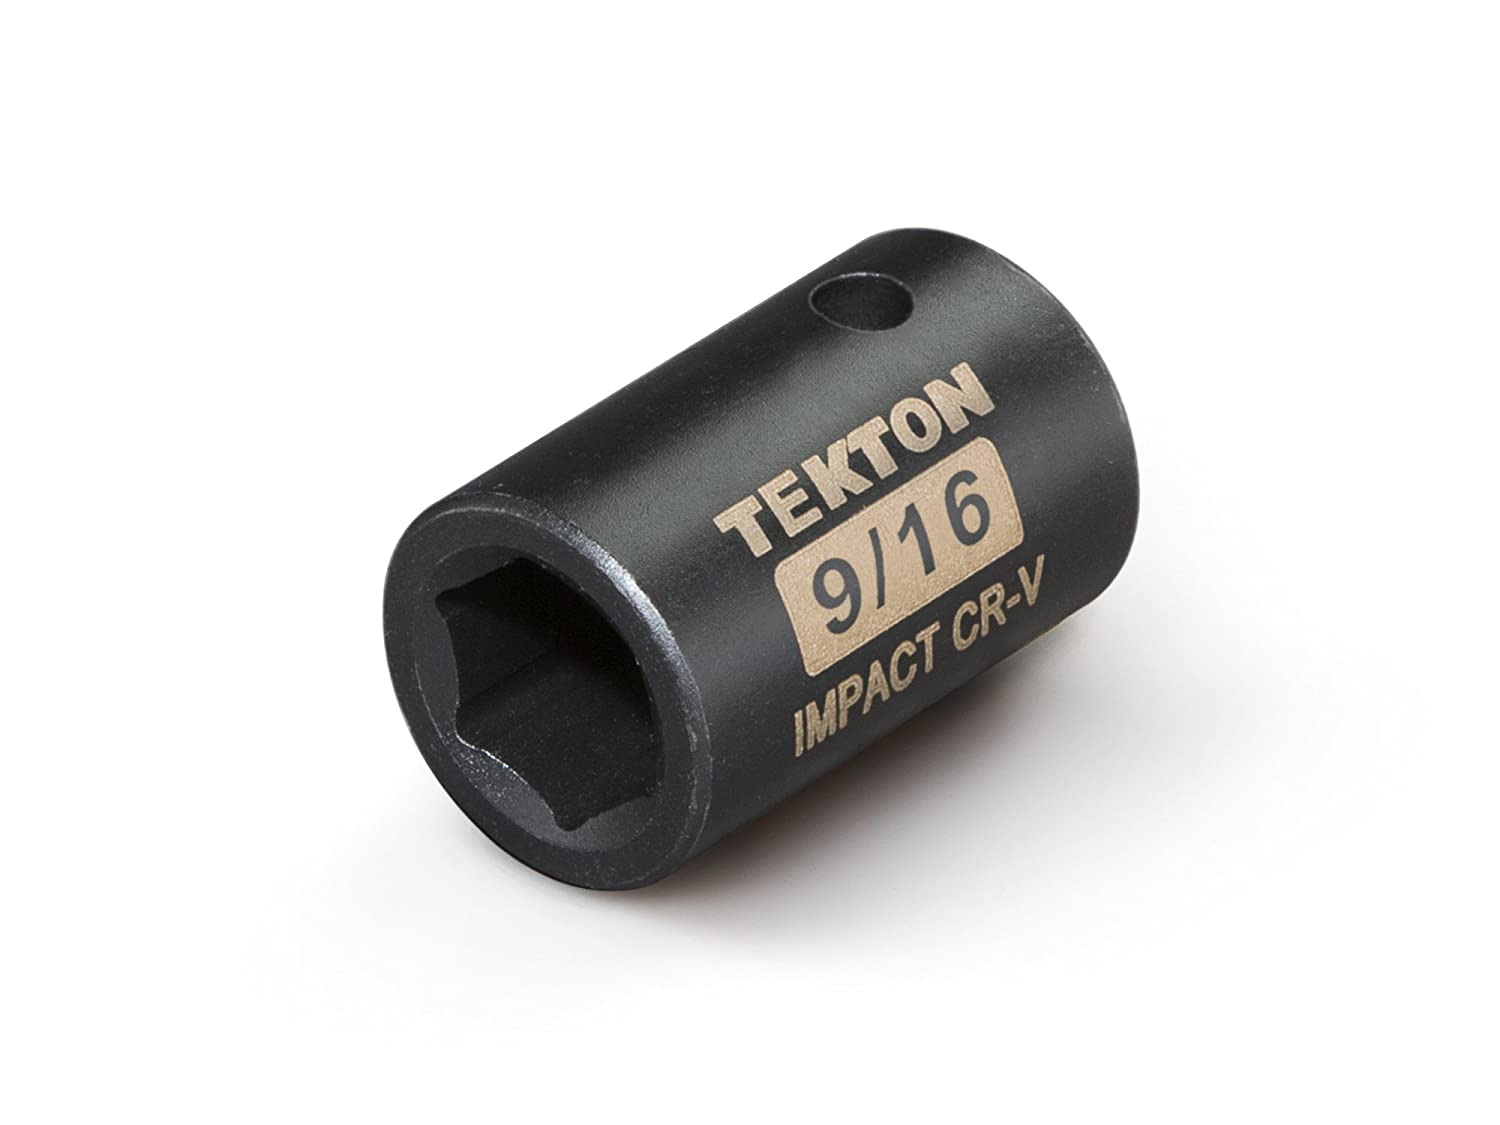 TEKTON 47758 1/2-Inch Drive by 15/16-Inch Shallow Impact Socket, Cr-V, 6-Point TEKTON 47758 1/2 in. Drive by 15/16 in. Shallow Impact Socket